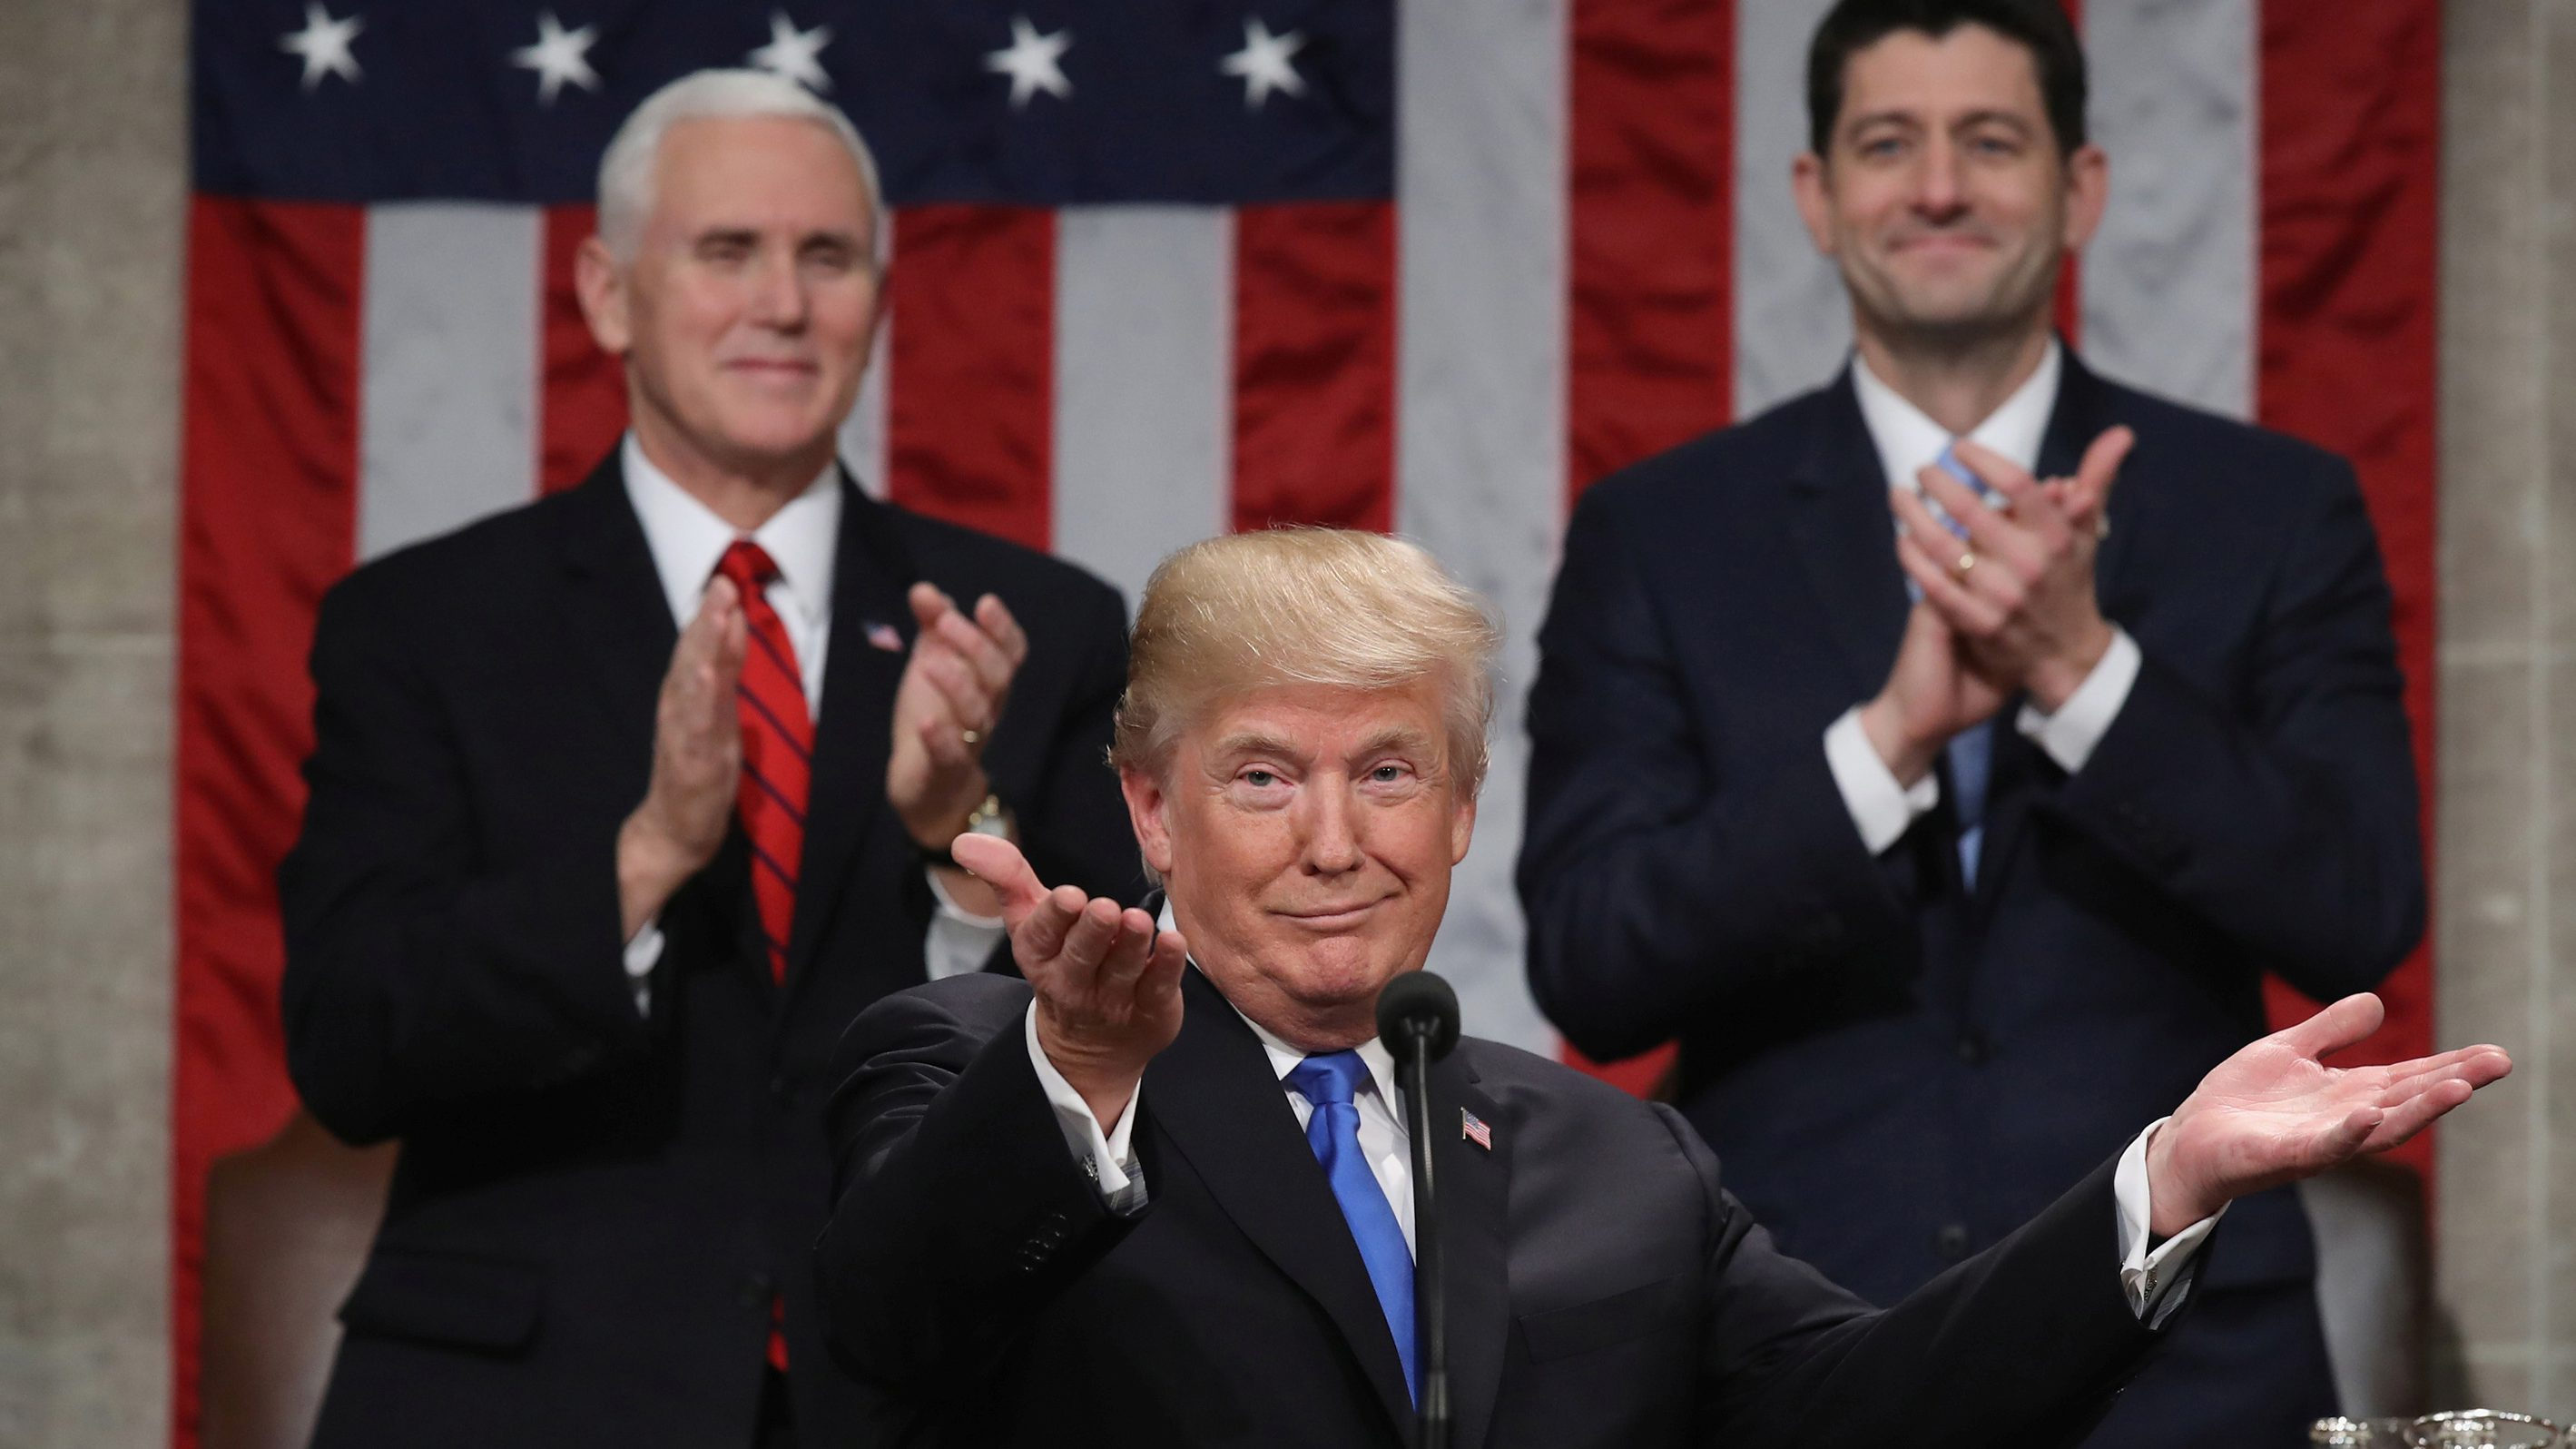 US president Trump delivers first State of the Union address to a joint session of Congress in Washington